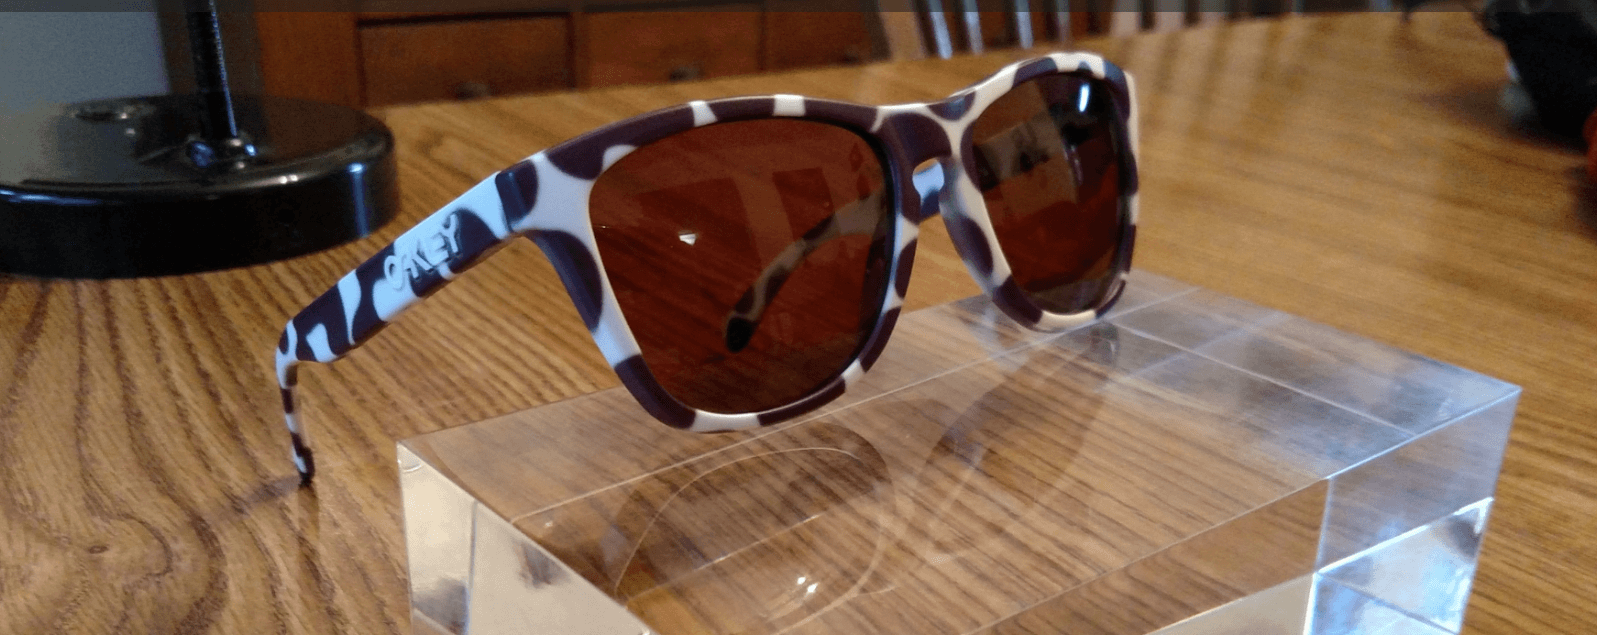 Used pair of Dalmatian Frogskins - upload_2016-10-14_18-10-40.png